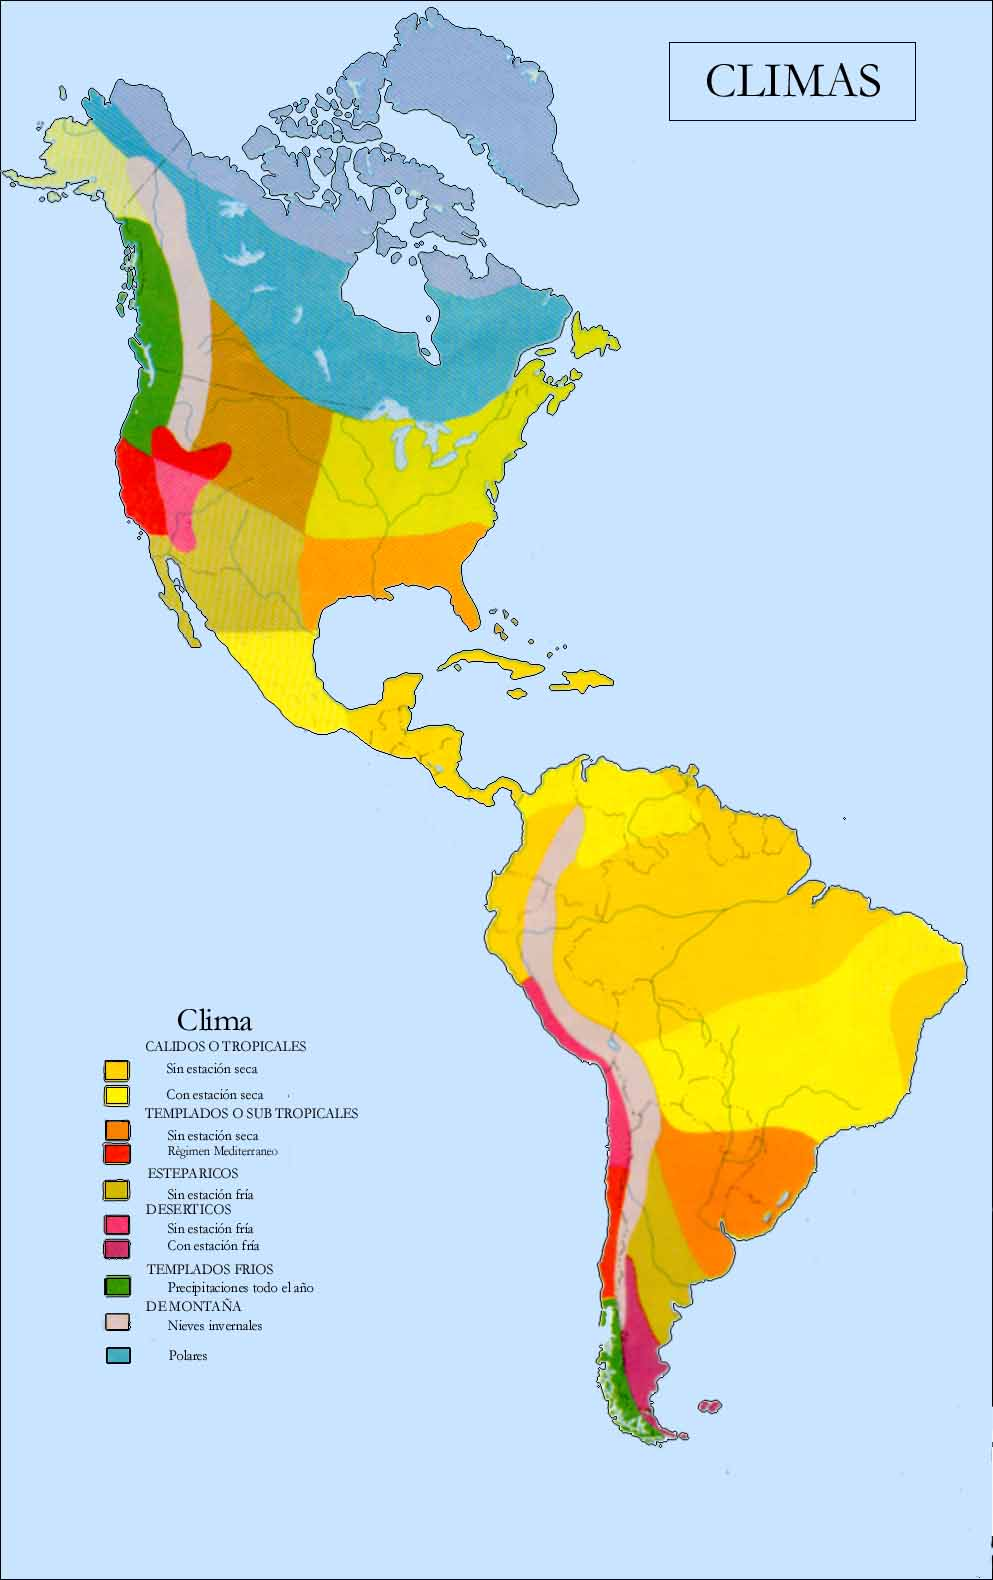 Mapa de Los climas de amrica